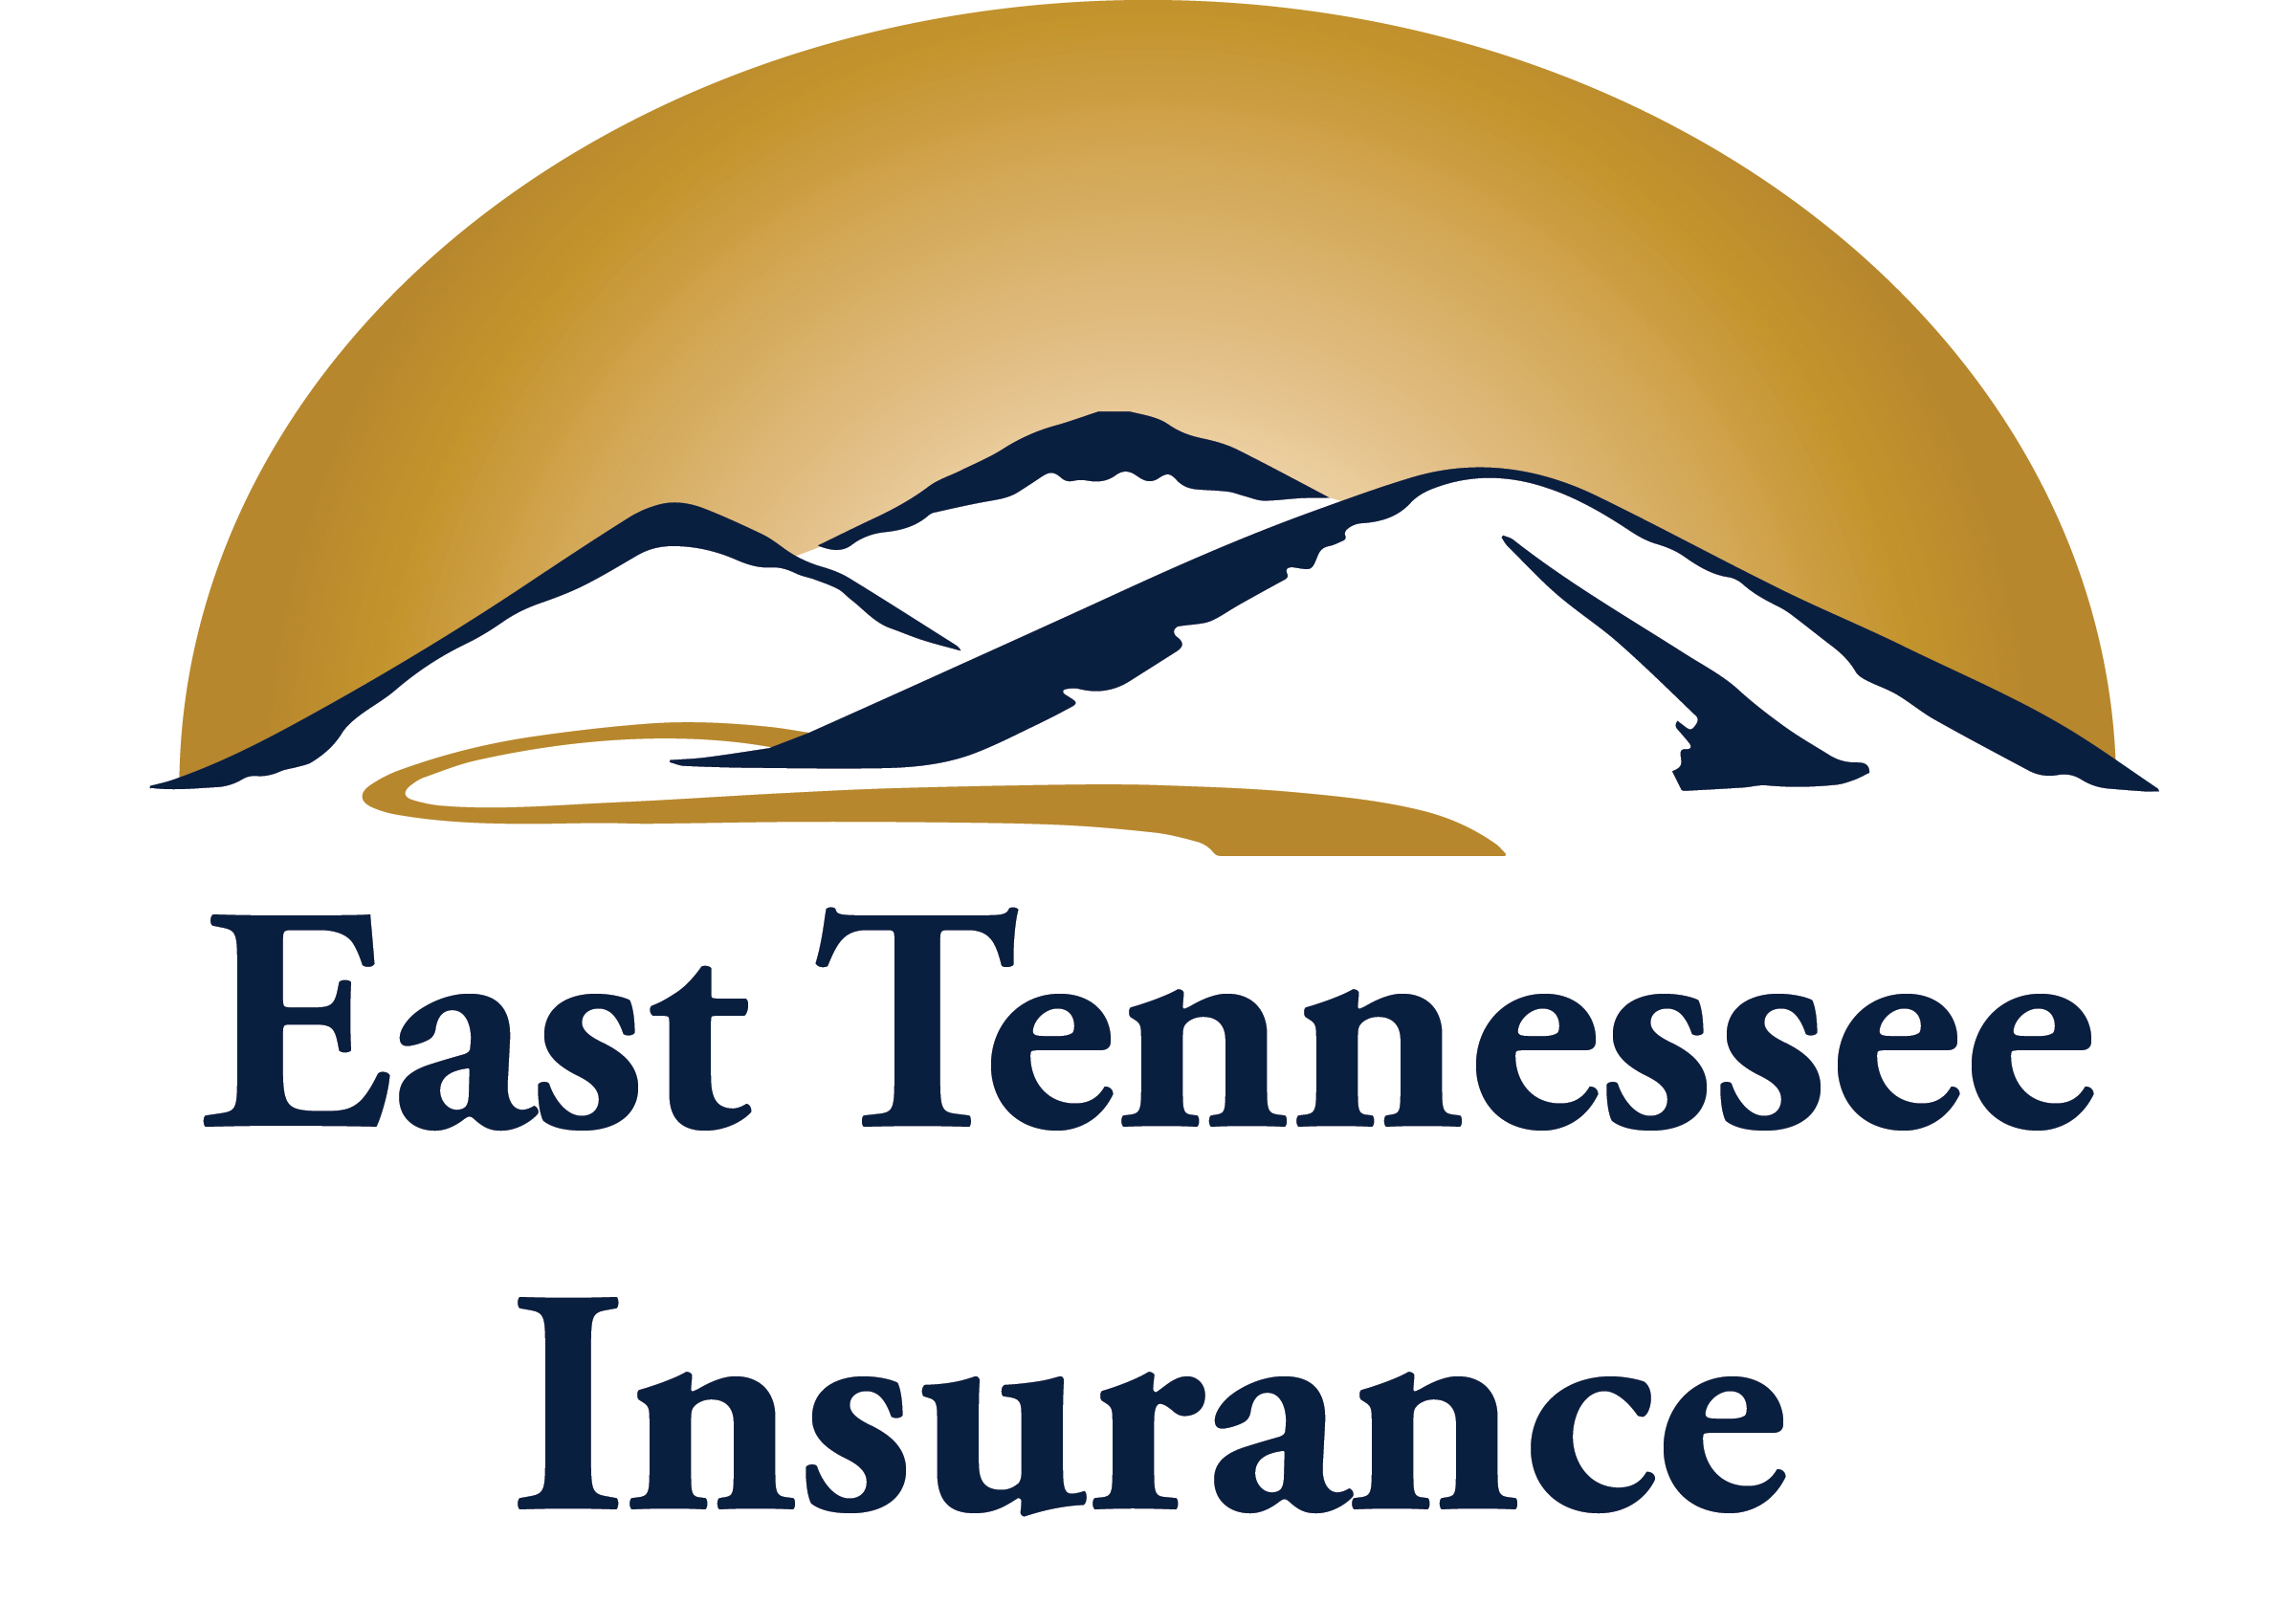 East Tennessee Insurance